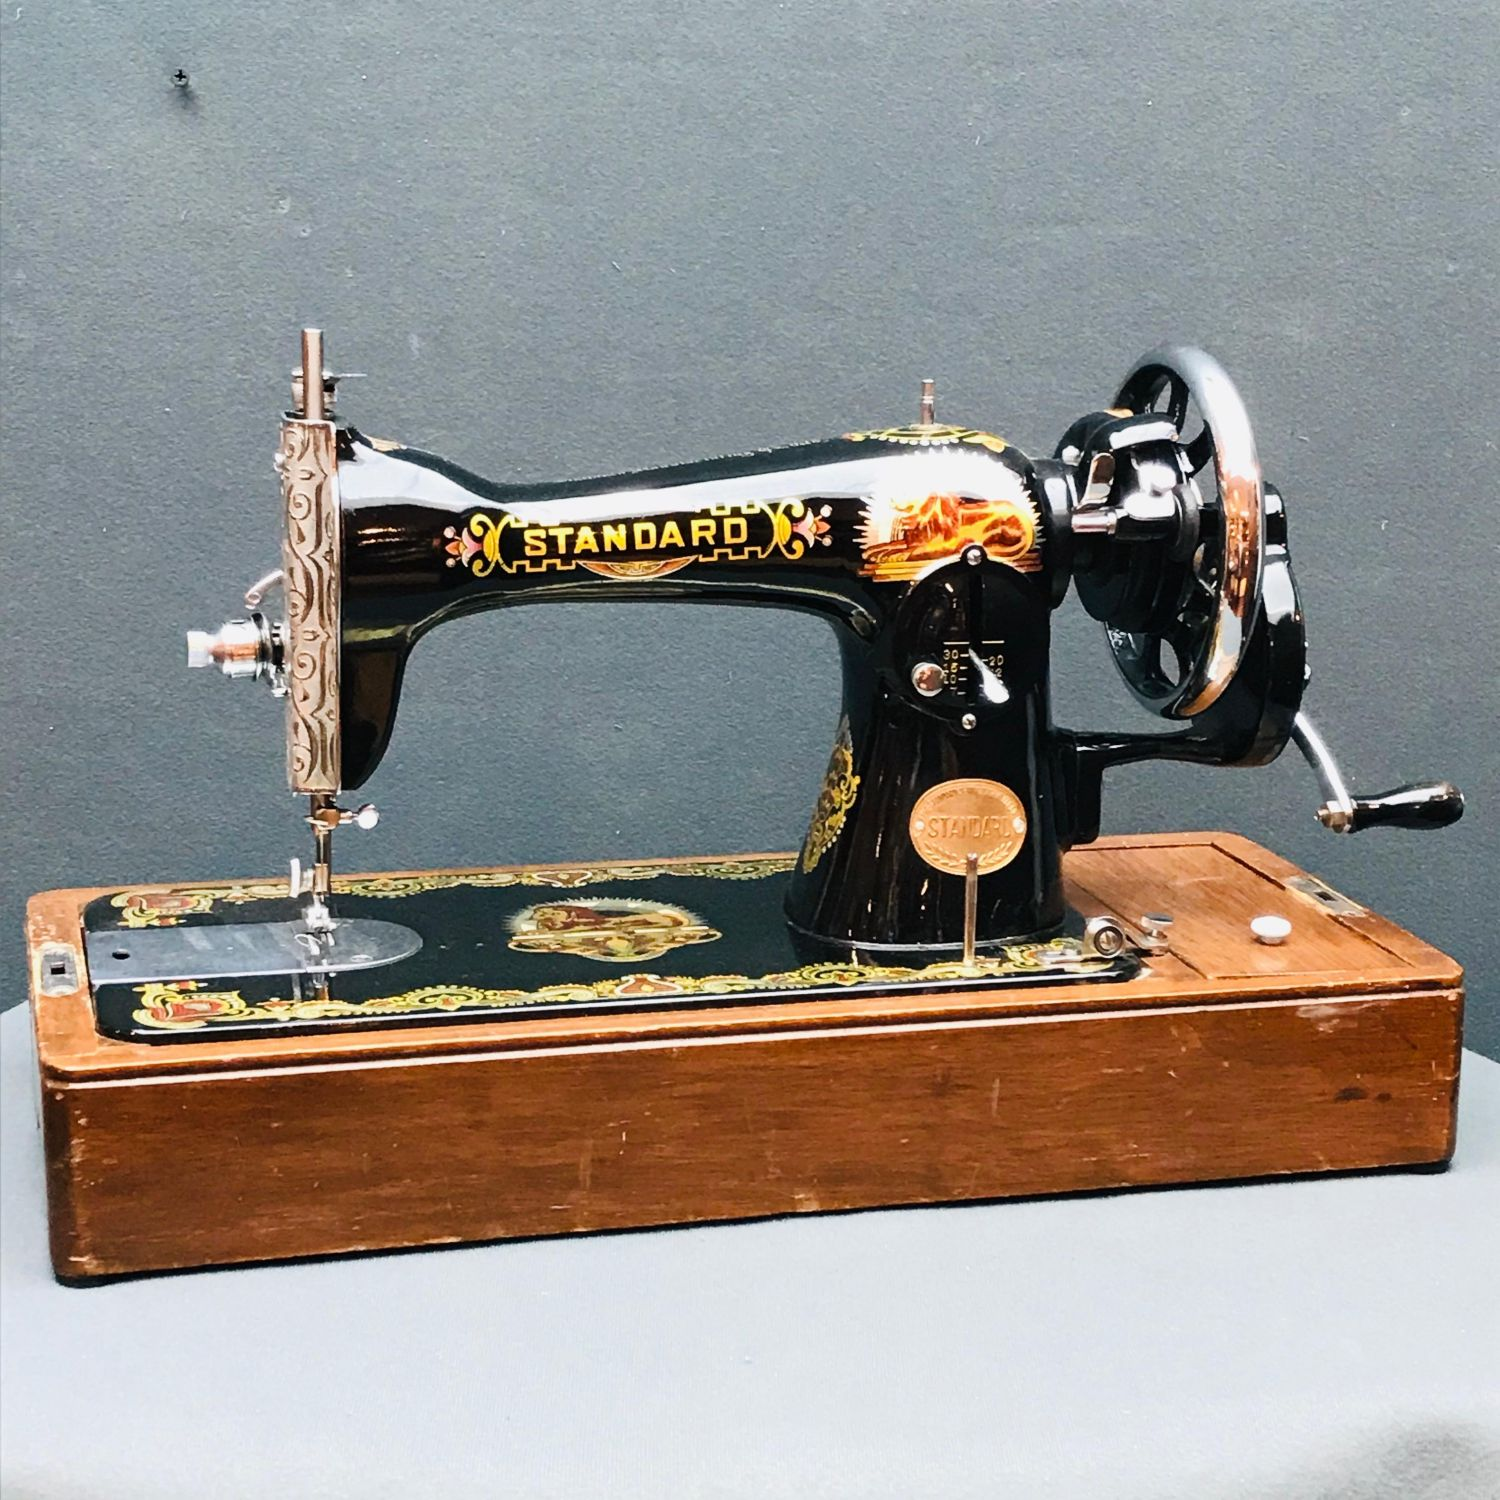 Vintage Standard Sewing Machine with Case - Metalware ...